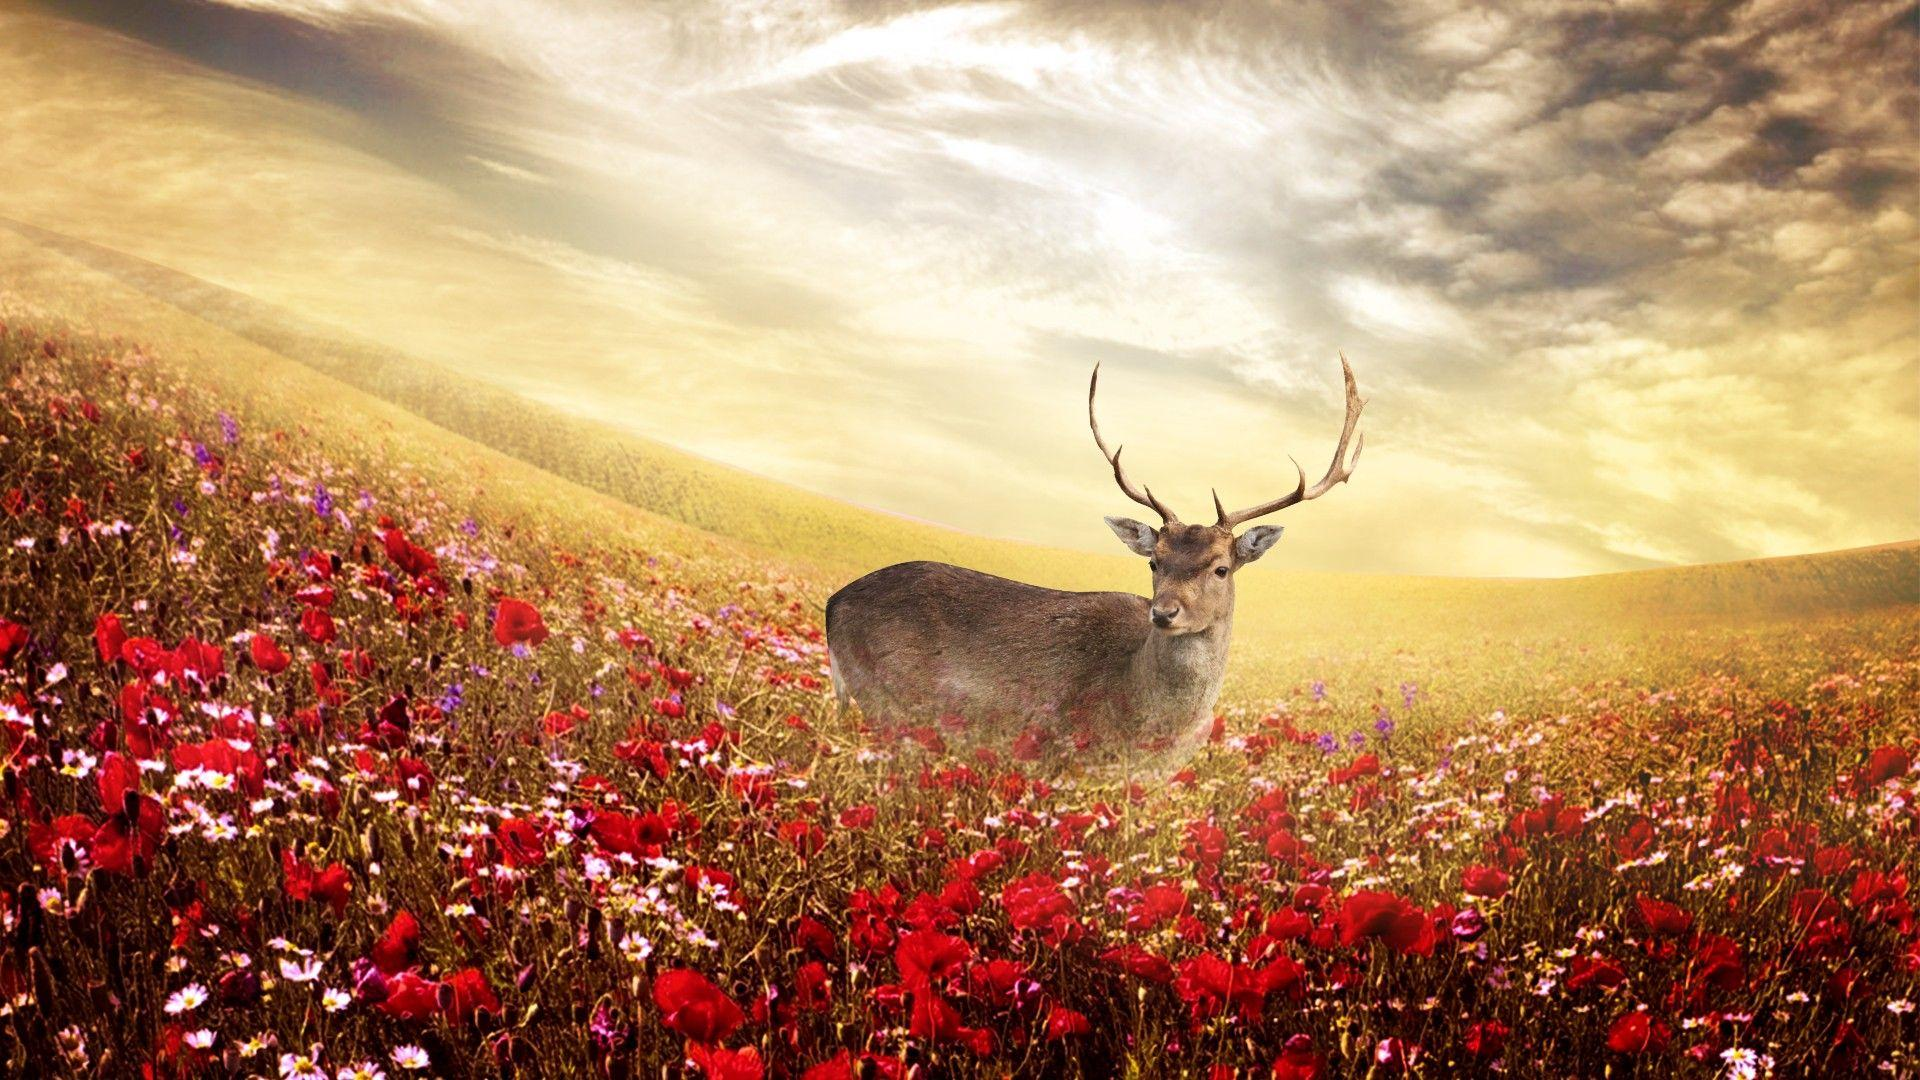 Deer backgrounds wallpaper cave - Free hd background images ...